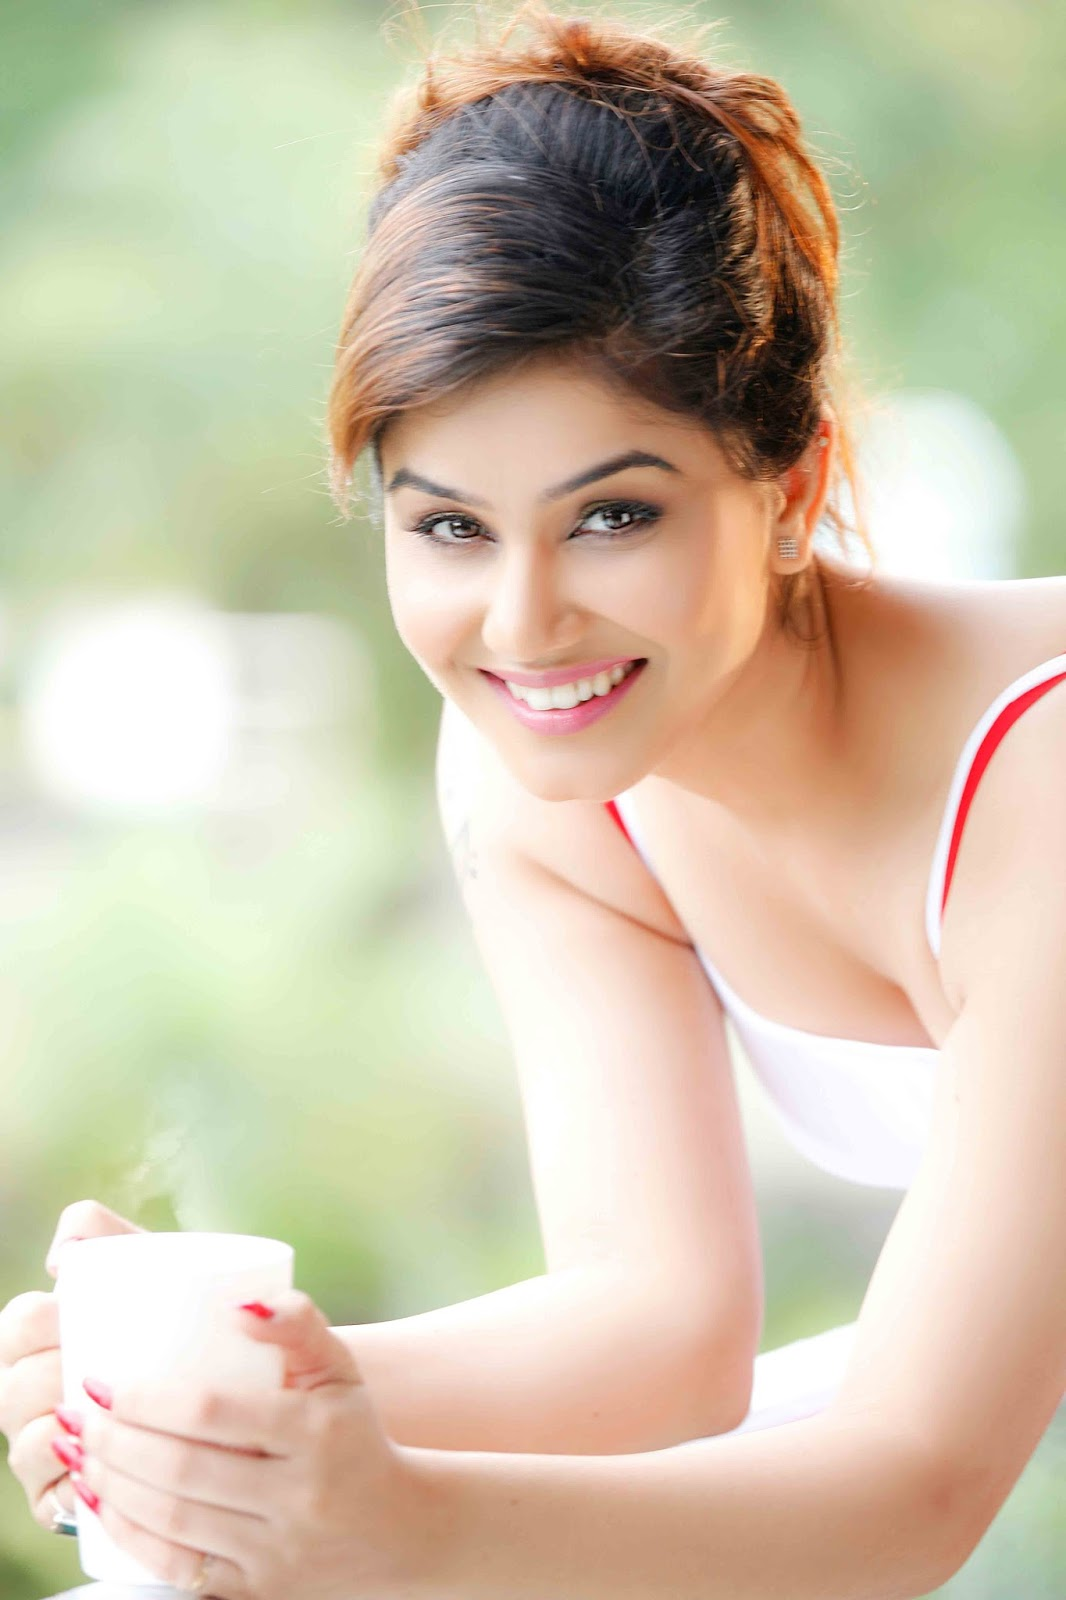 Kangna Sharma with coffee, Kangna Sharma wallpaper